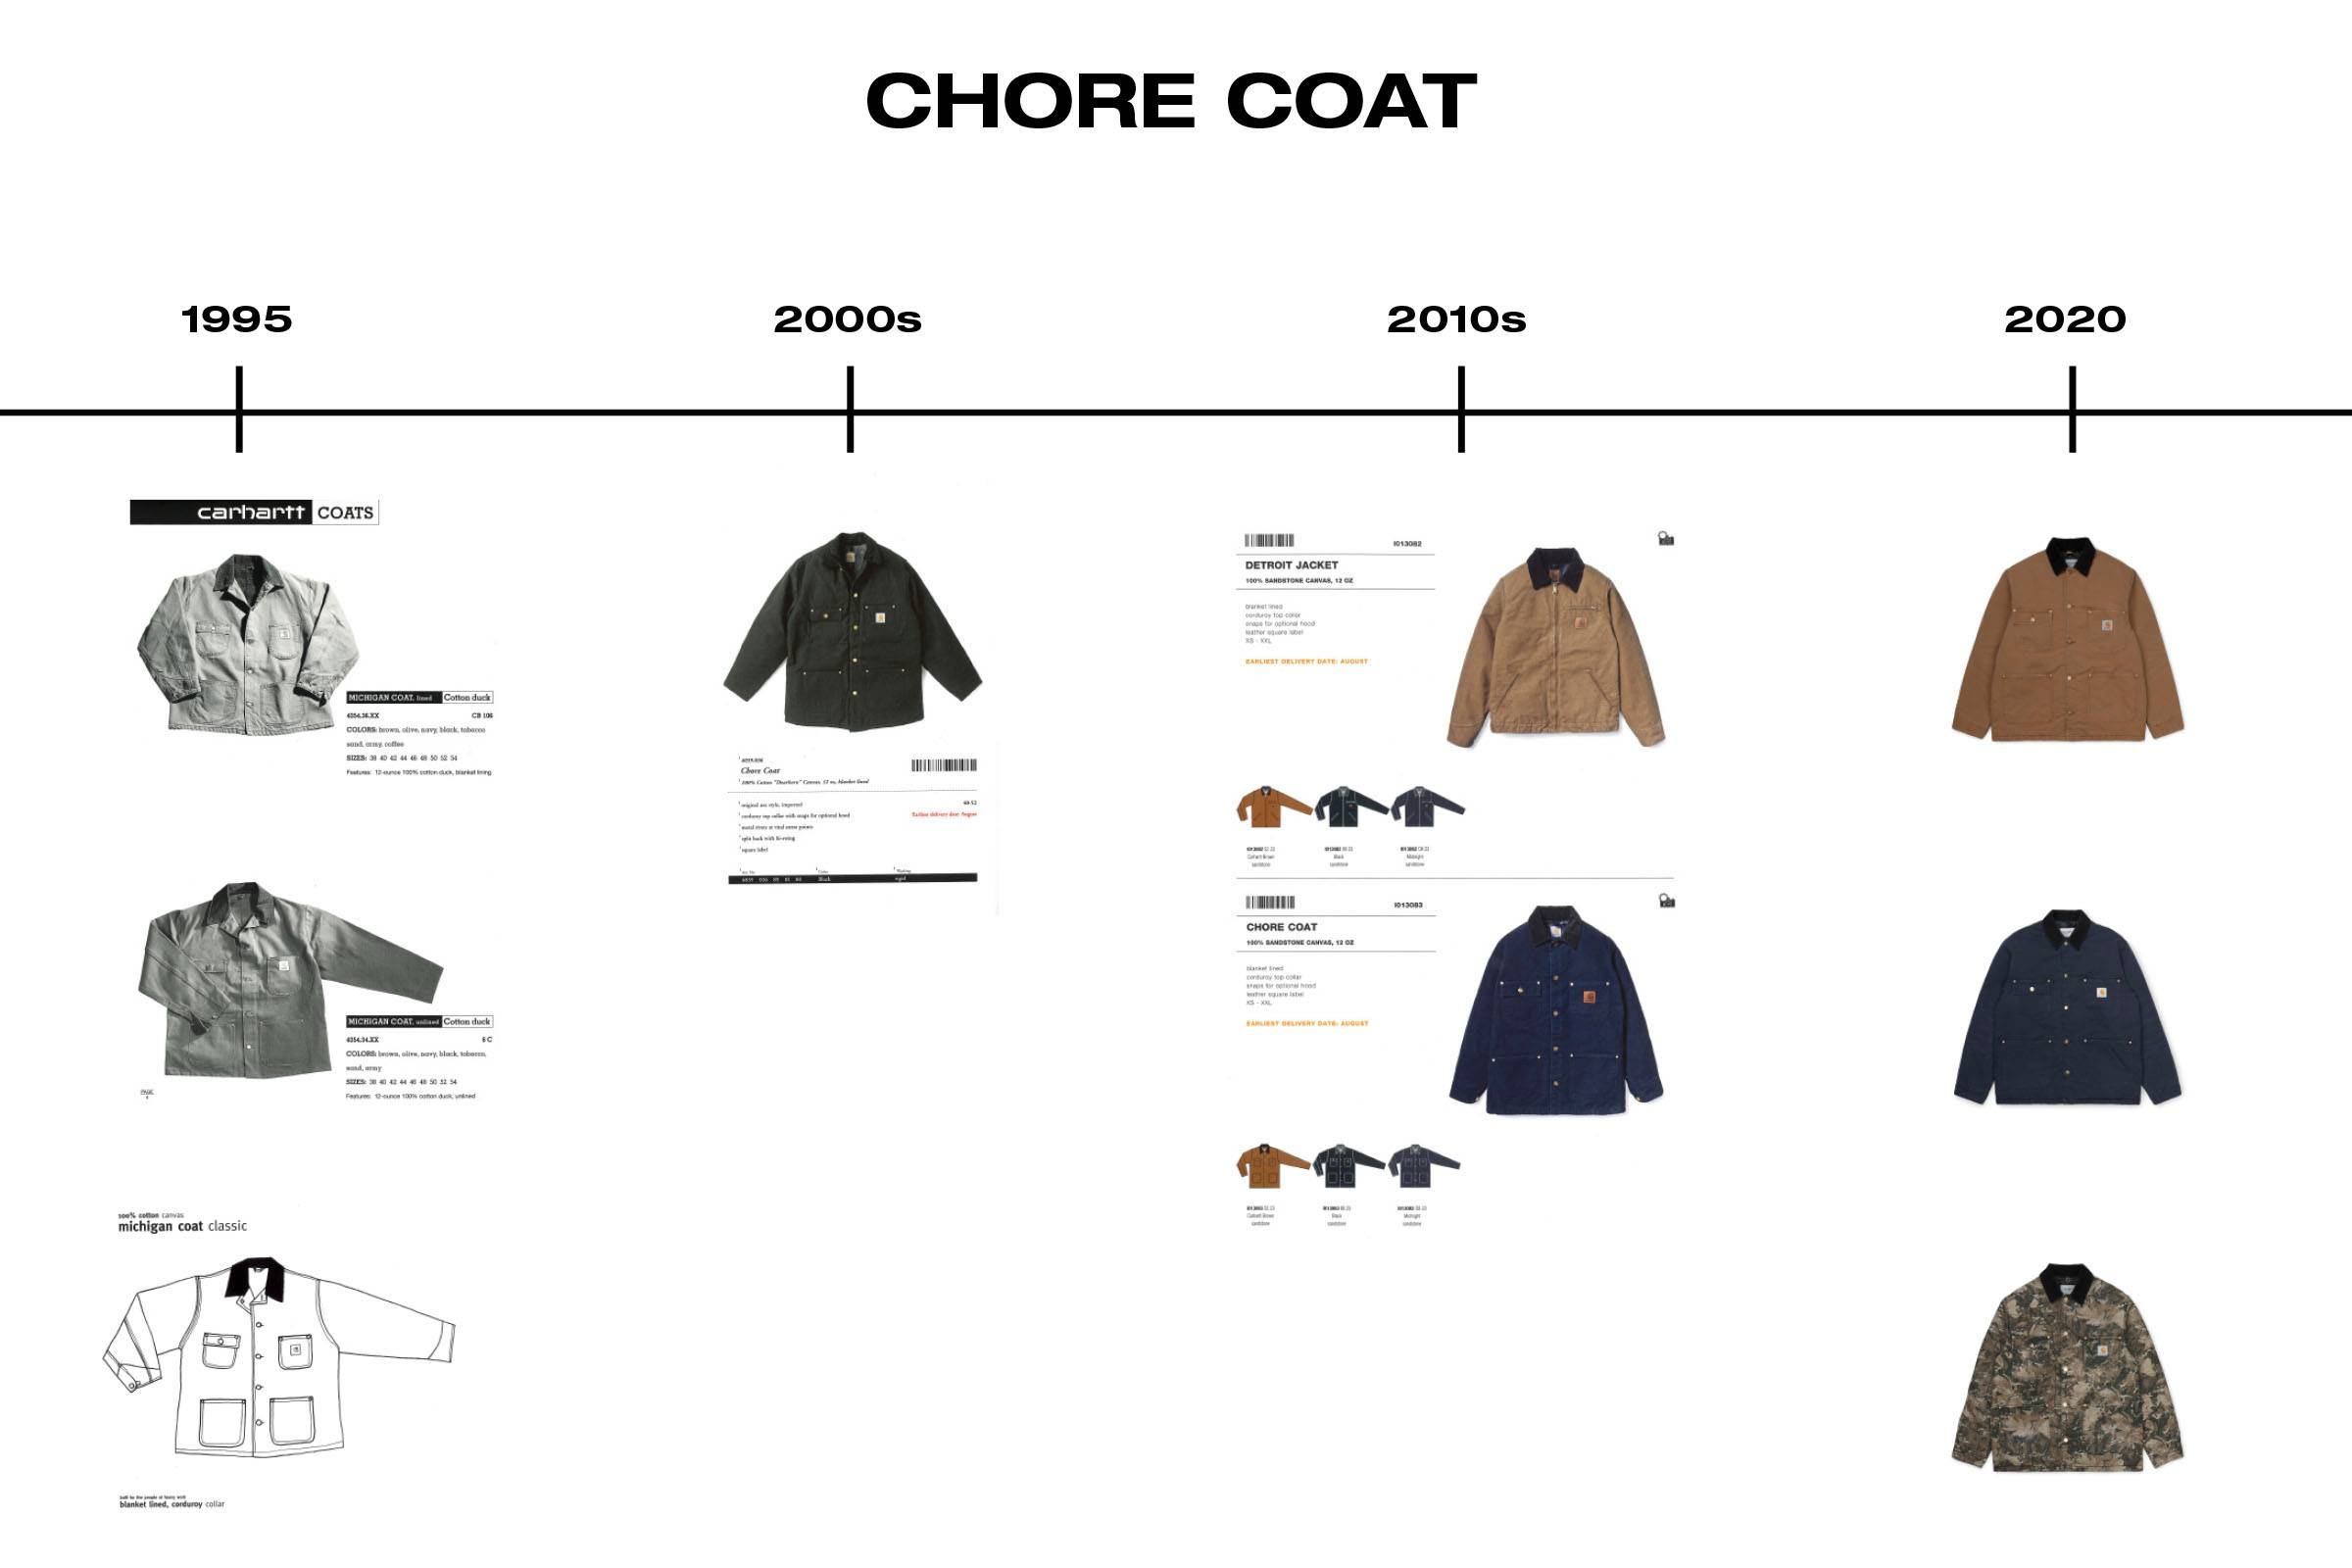 Timeline: Key Carhartt Chore Coat Releases and Collaborations